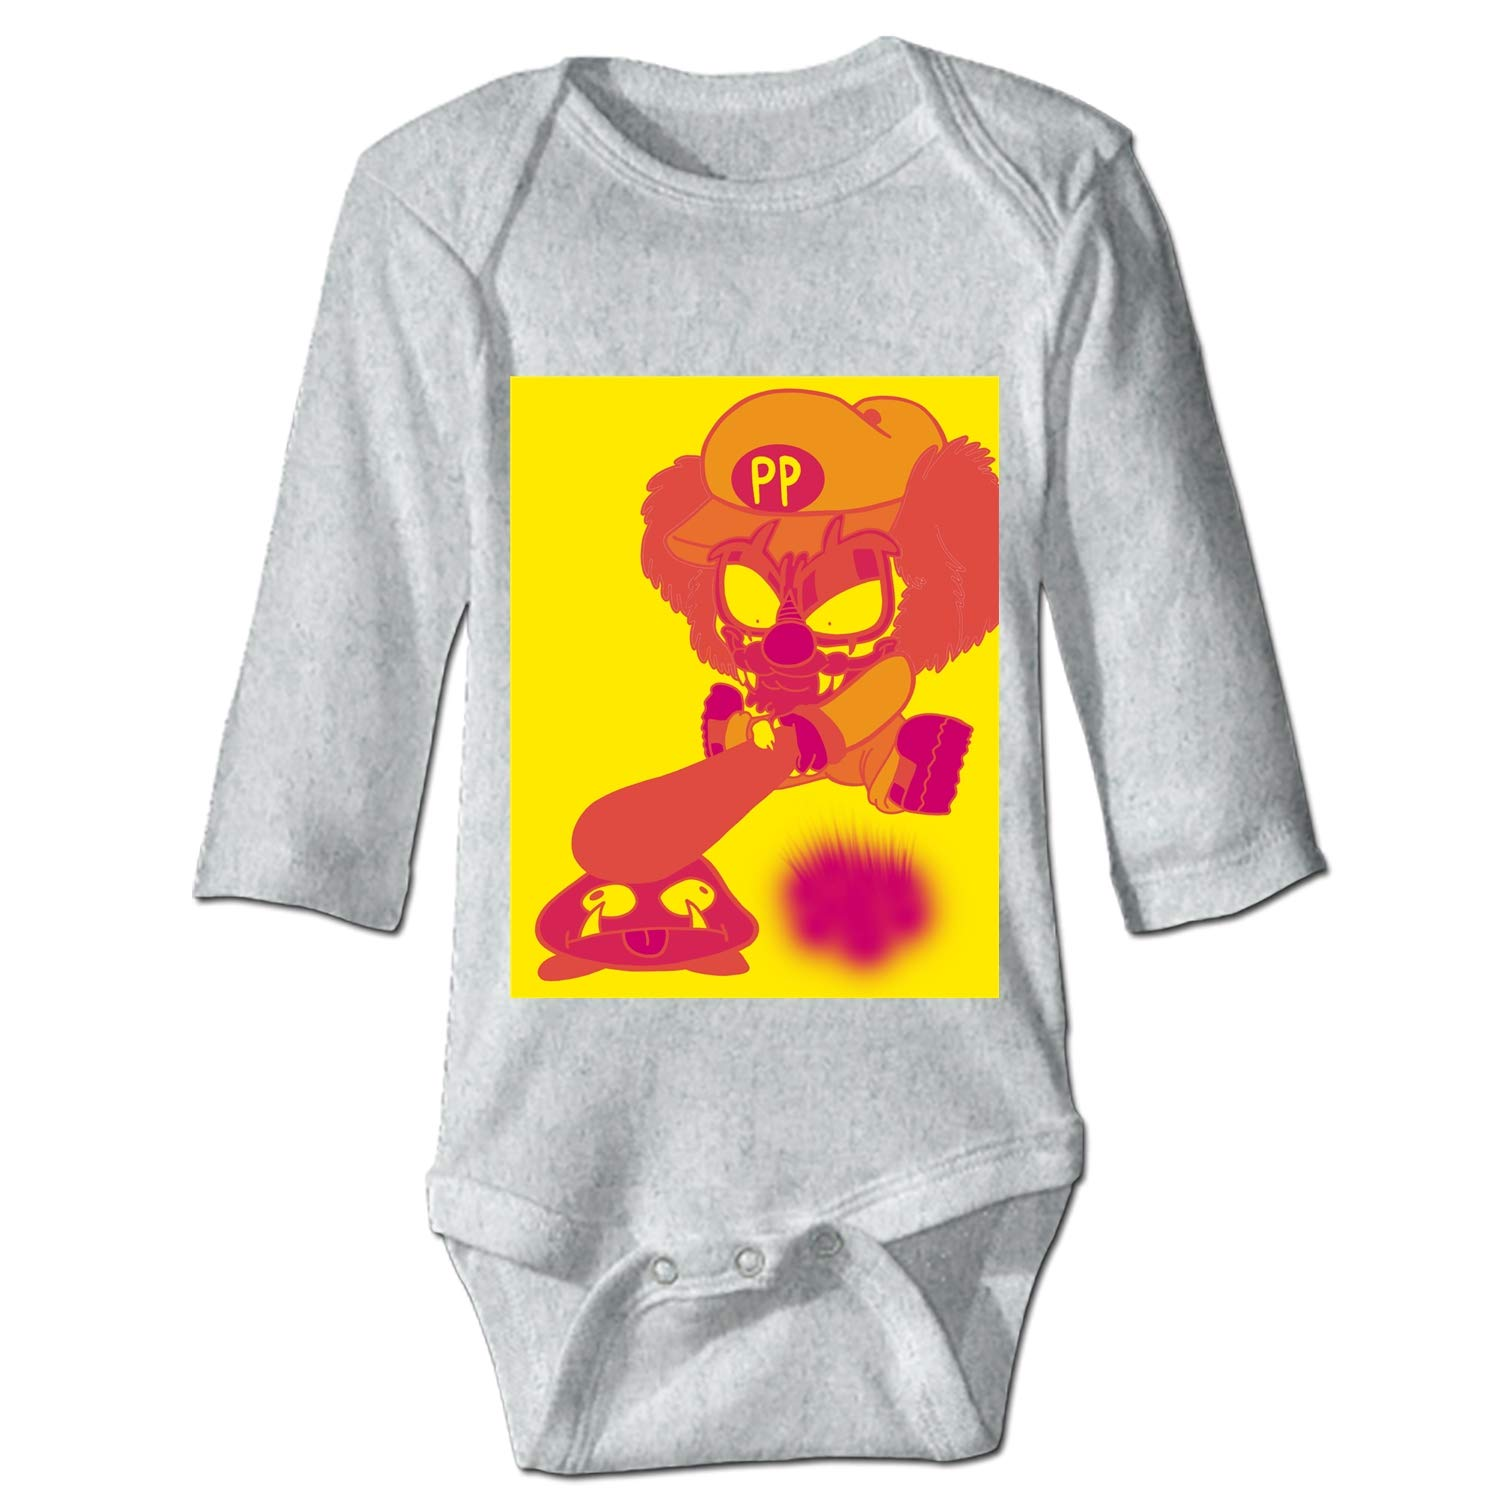 XASFF Mexican American Map Infant Baby Boys Girls Clothing Shirts Long Sleeves Rompers Jumpsuit